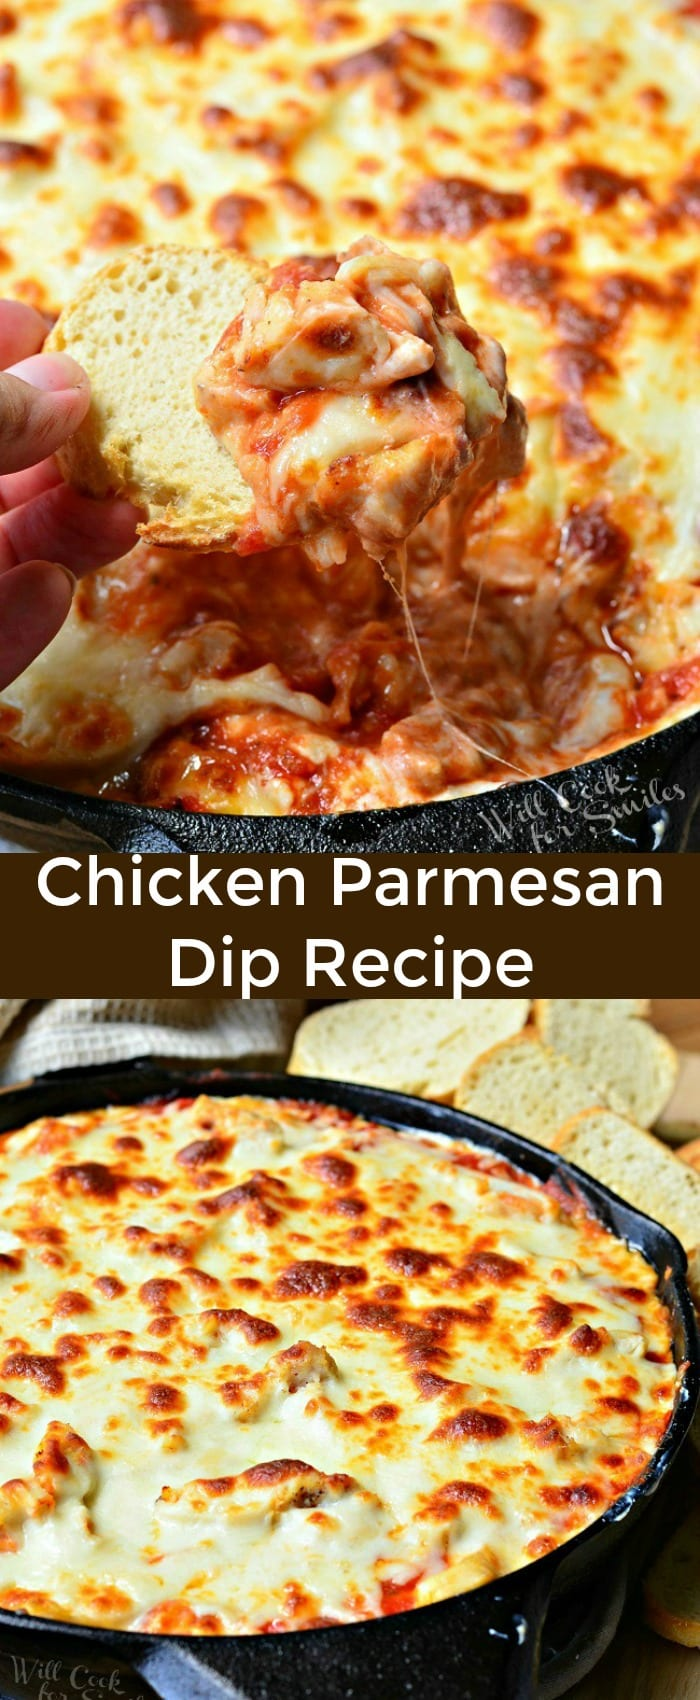 Cheesy, creamy, gooey Chicken Parmesan Dip Recipe. Layer of cheesy cream cheese and chicken mixture topped with marinara sauce, layered with chicken and more cheese. #dip #cheesy #chicken #chickenparm #parmesan #snack #appetizer